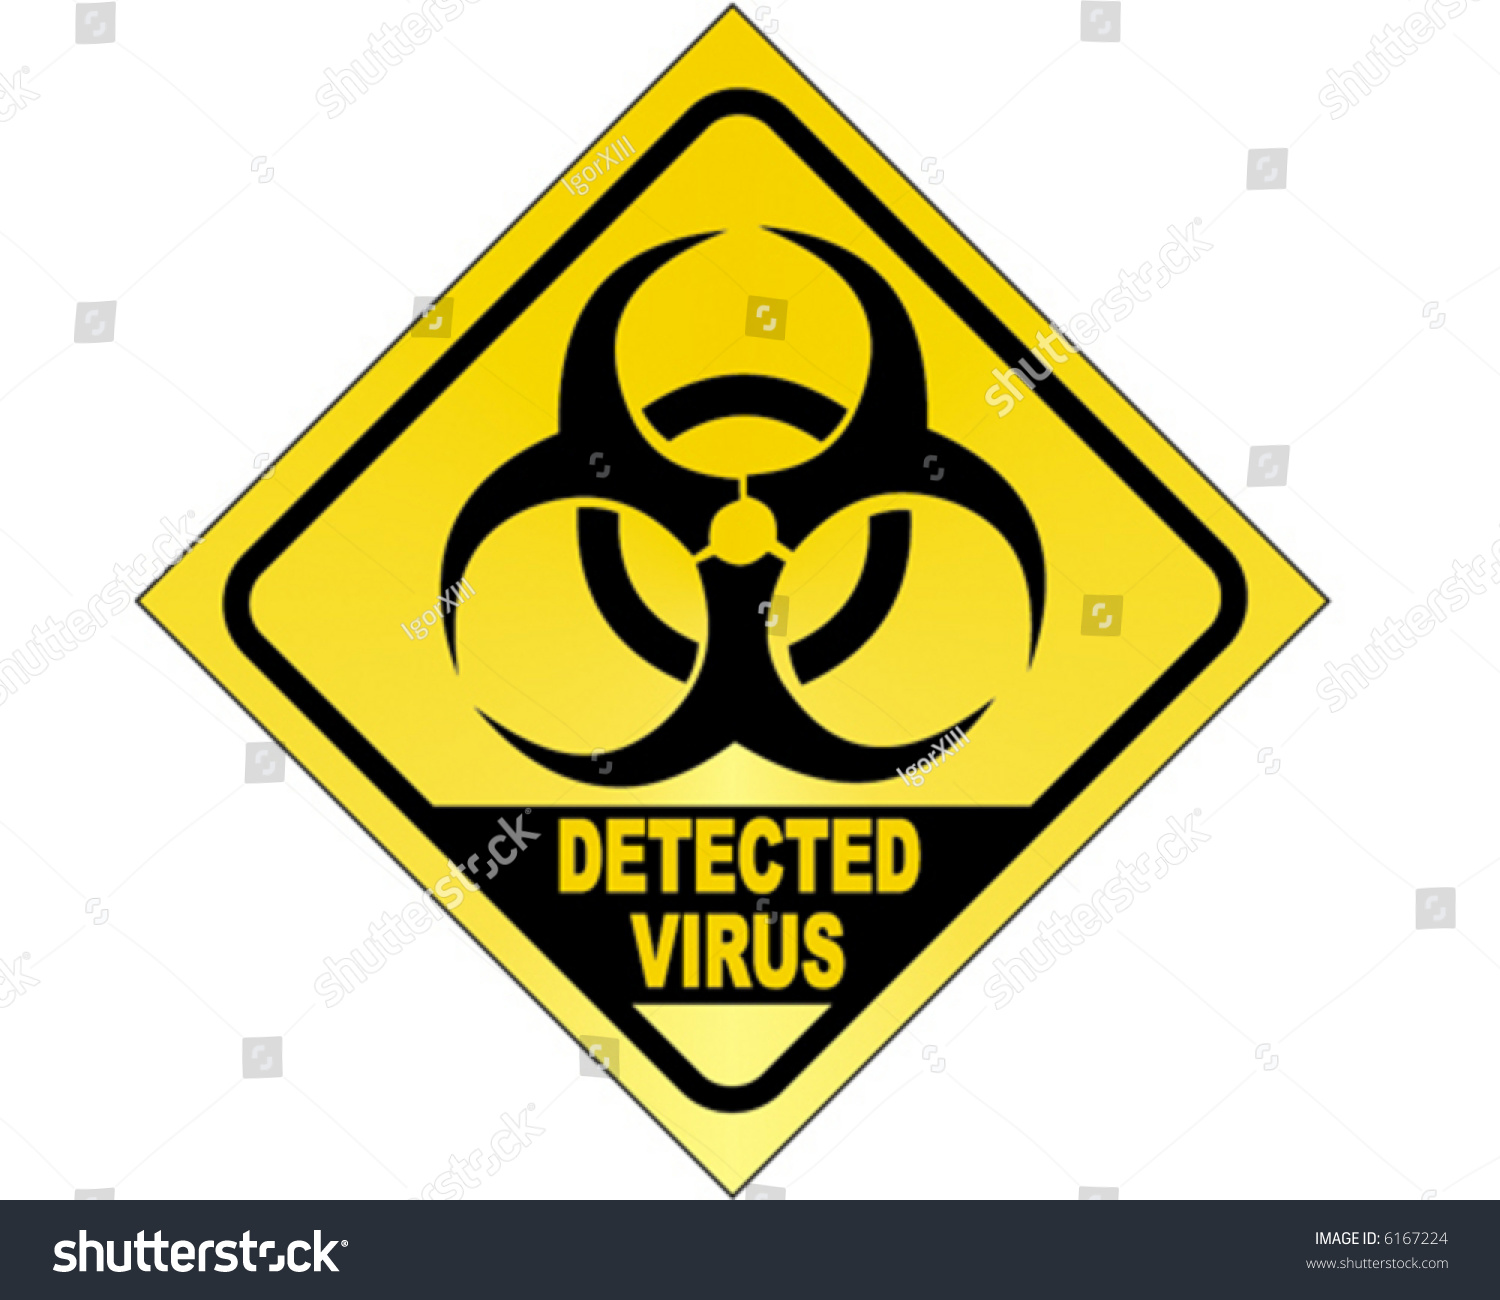 Virus Detected Biohazard Vector Sign Stock Vector 6167224 ...